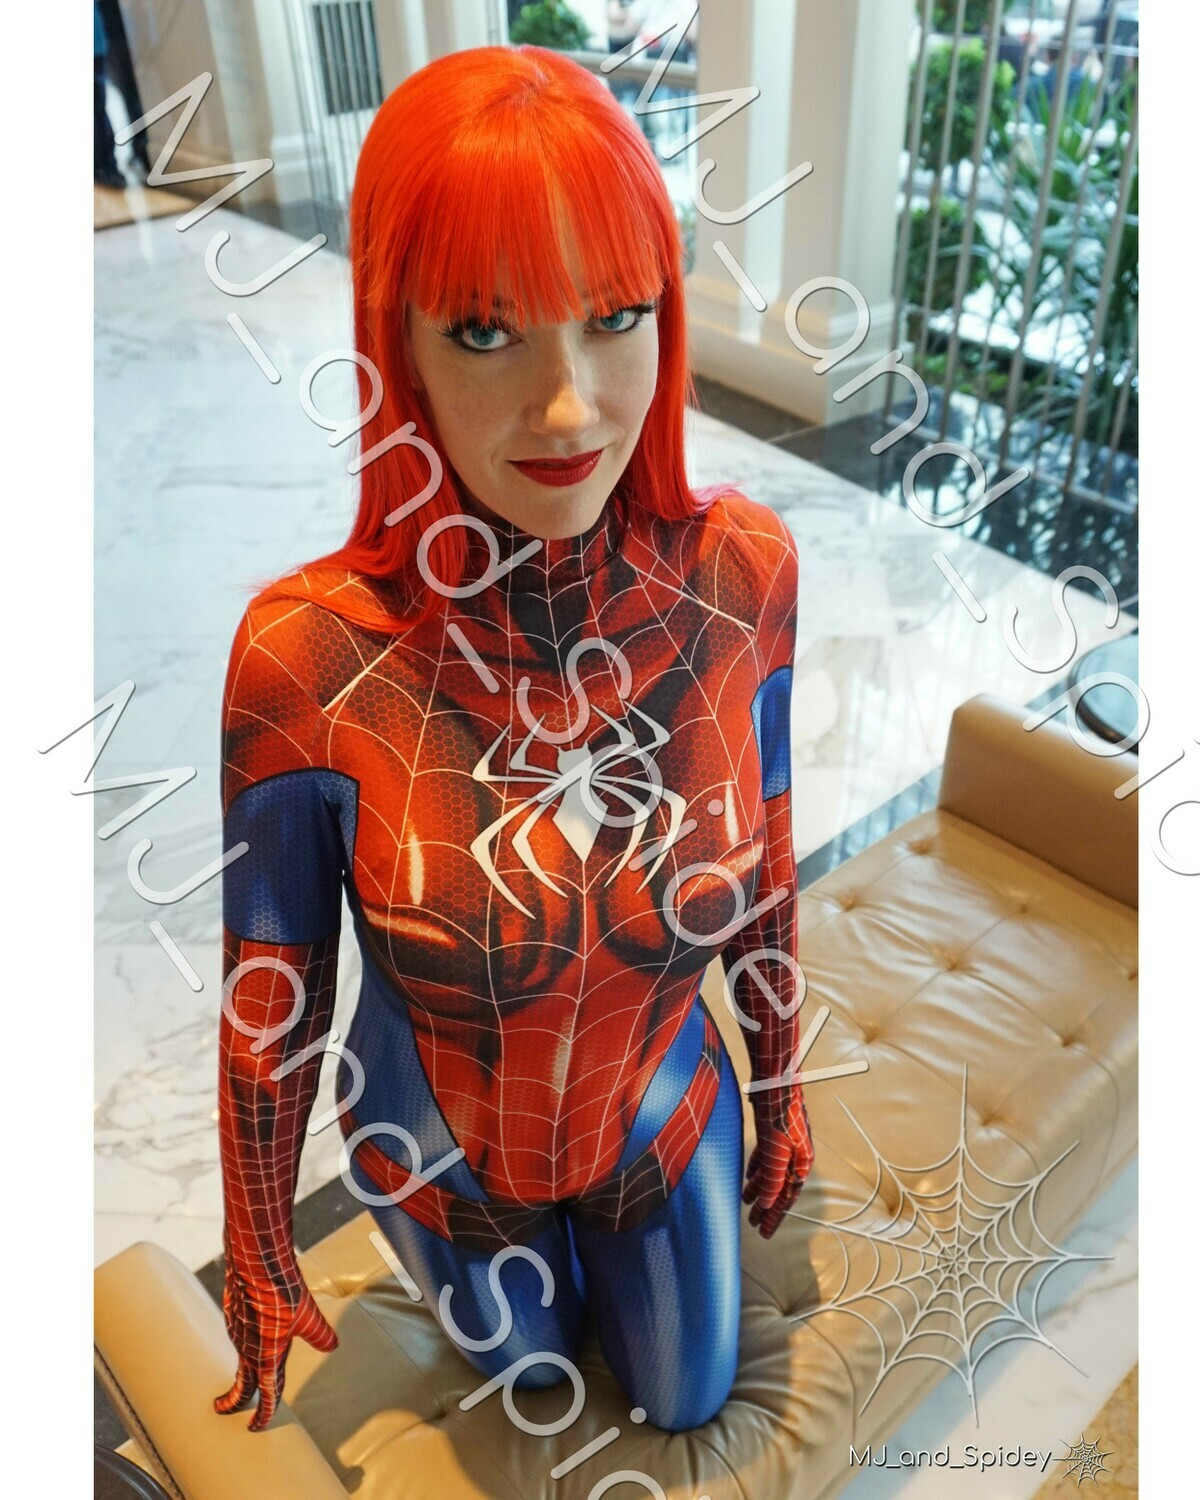 Marvel - Spider-Man - Mary Jane Watson - Classic Spider-Suit - MAGFest No. 1 - Digital Cosplay Image (@MJ_and_Spidey, MJ and Spidey, Comics)